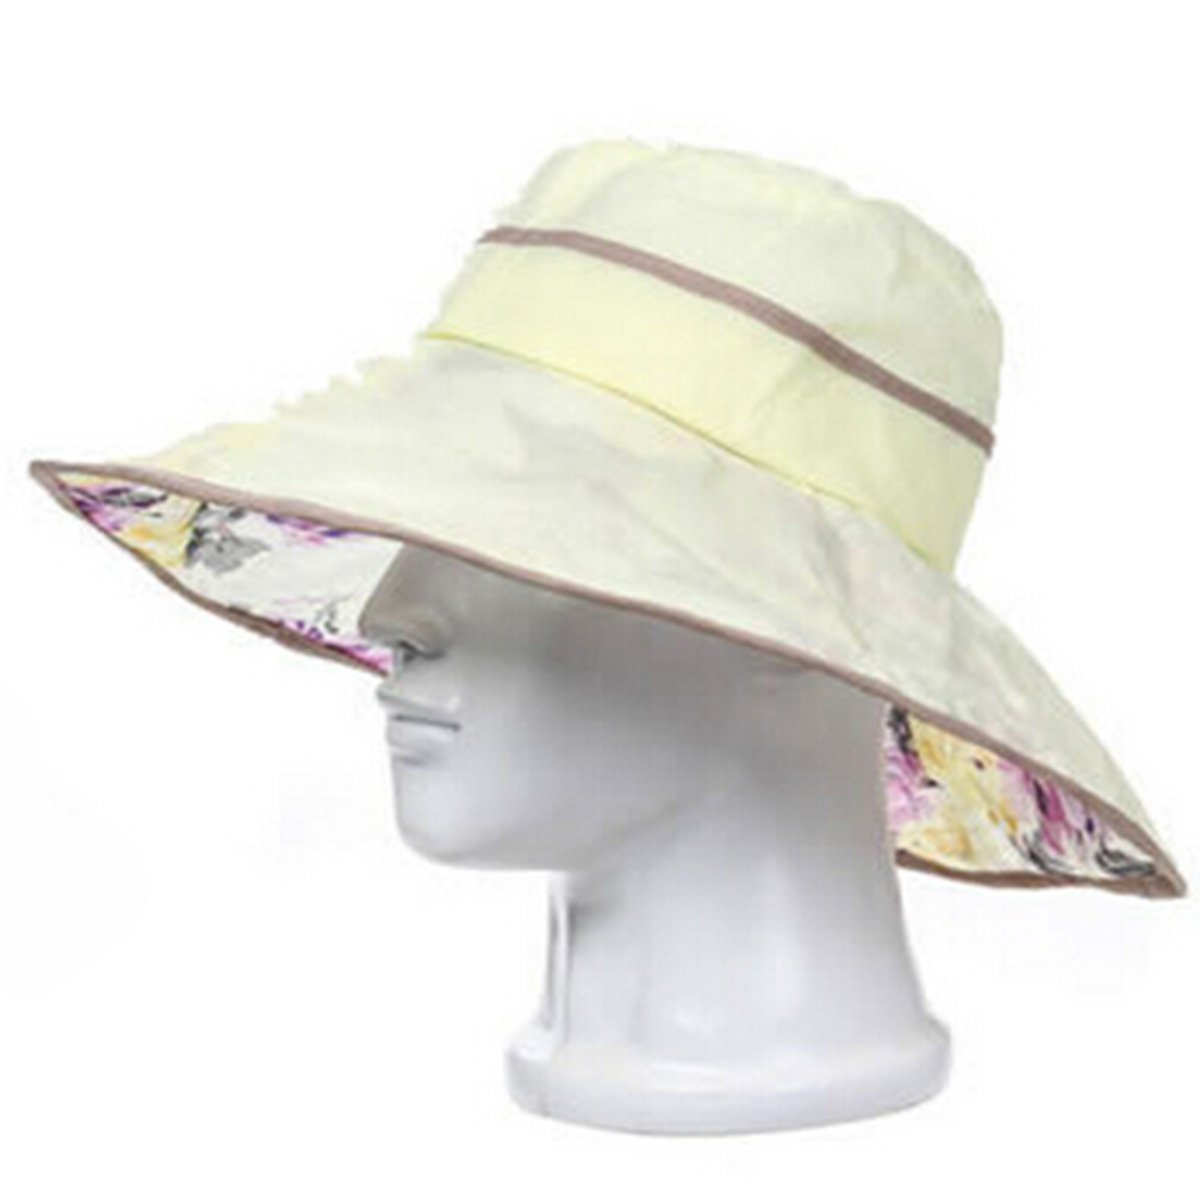 6f0bc1d53 Buy Fun Summer Printed Floral Sun Bucket Hat Cotton Ribbon Ties ...